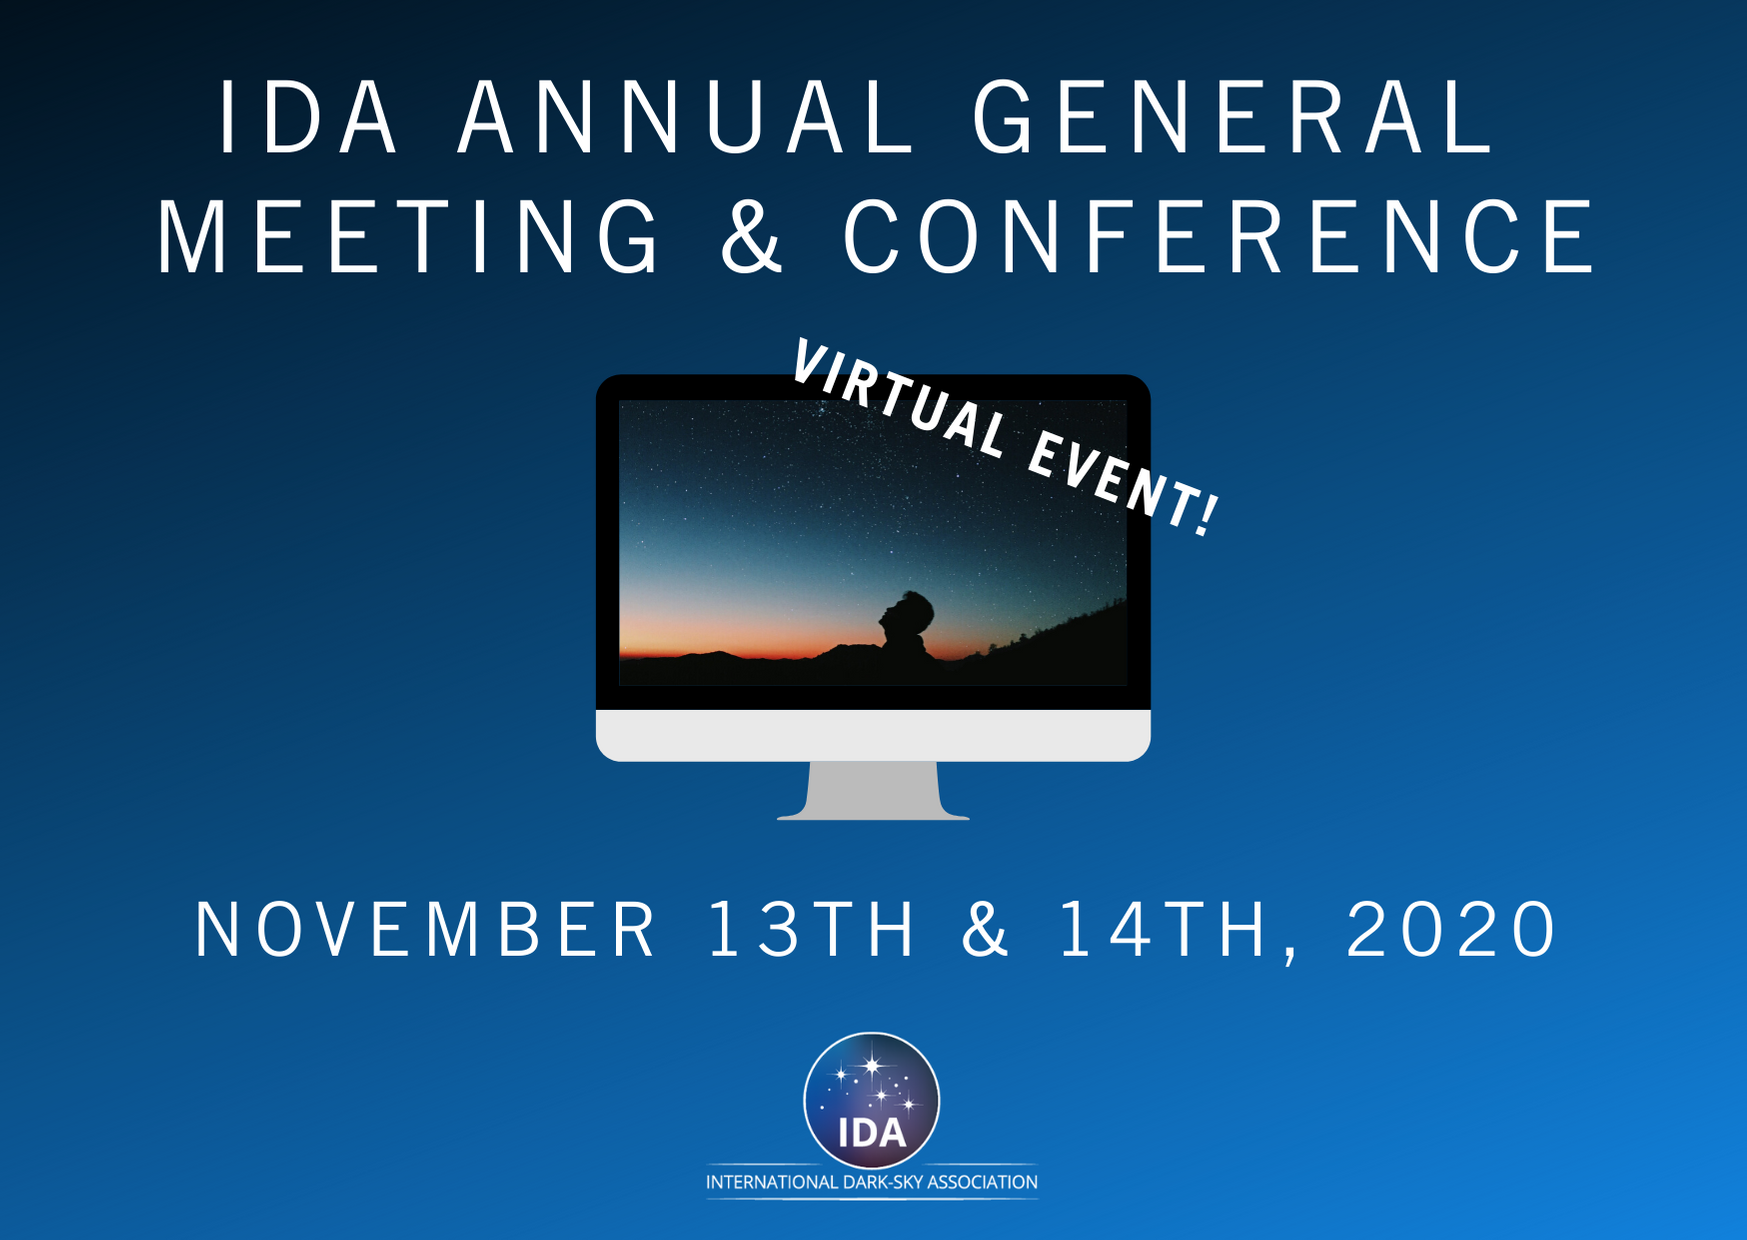 Save the Date – IDA 2020 *Virtual* Annual General Meeting & Conference Image